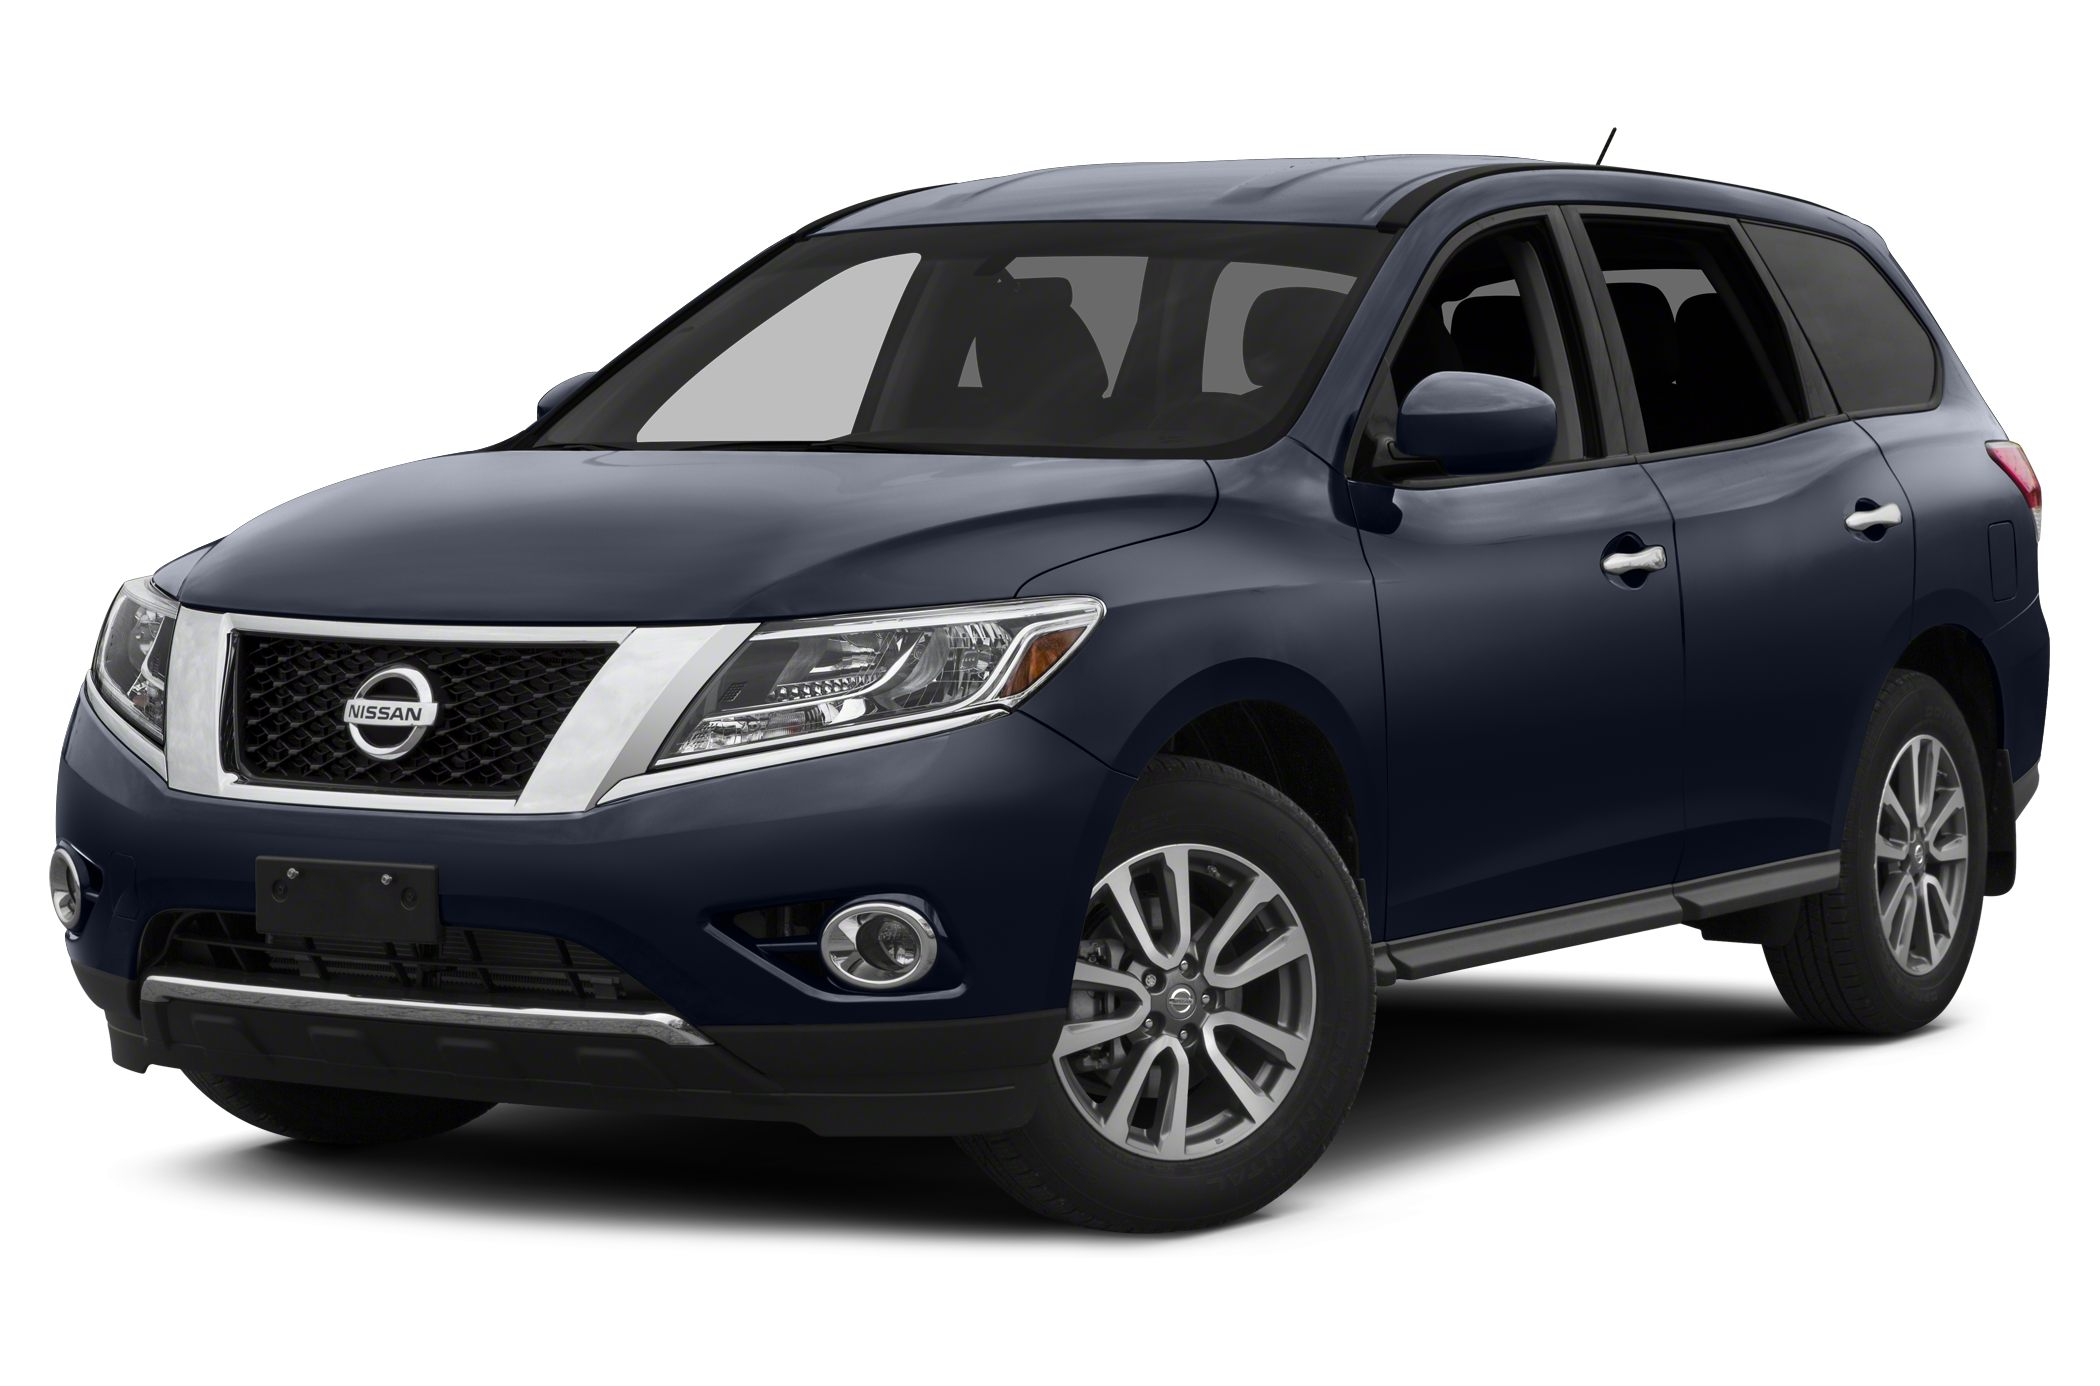 2015 Nissan Pathfinder SL SUV for sale in Mentor for $35,983 with 5 miles.